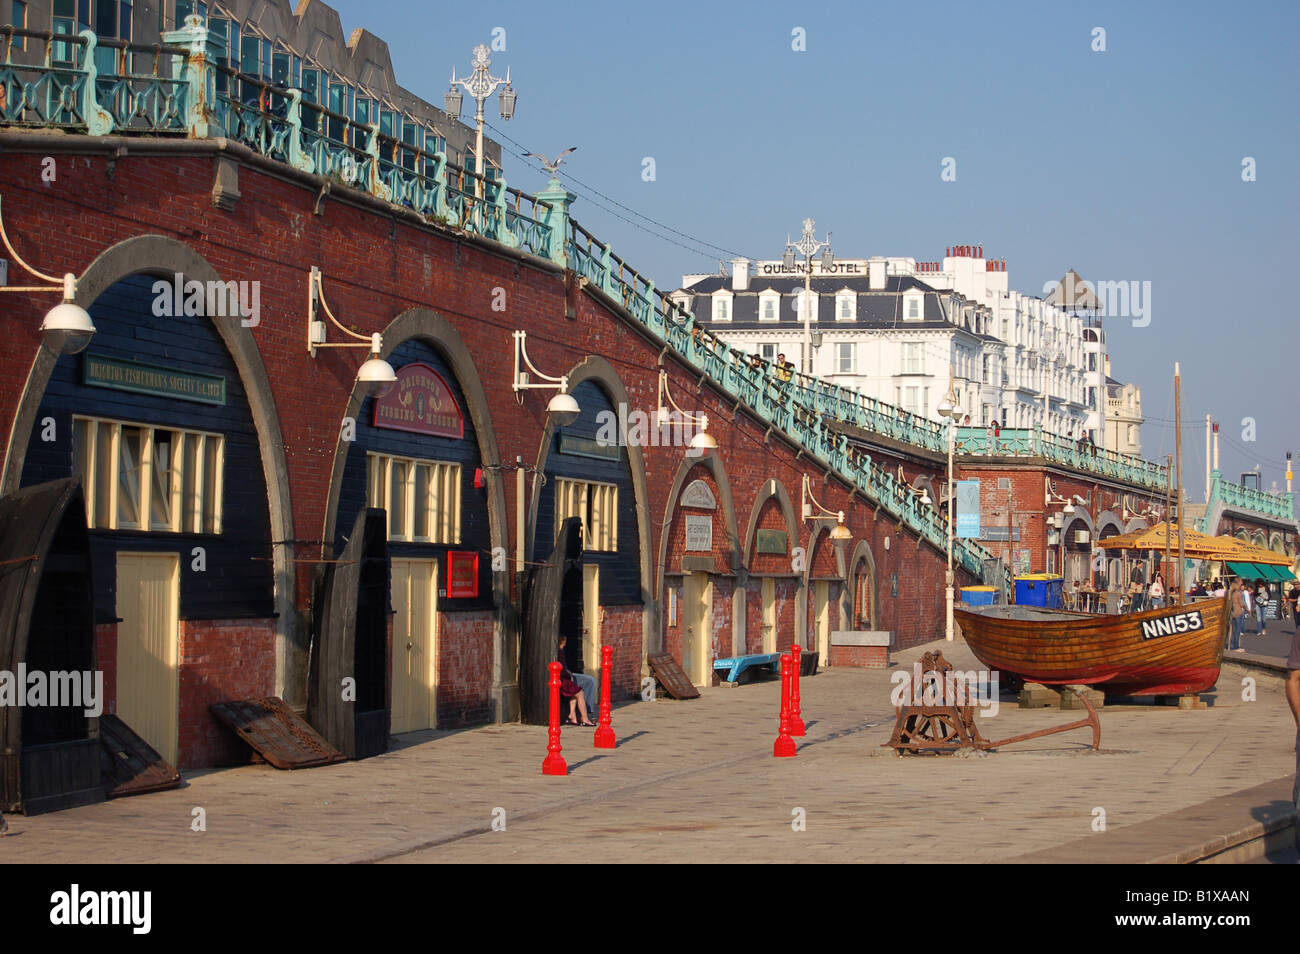 Brighton sea front and shops, East Sussex, England - Stock Image